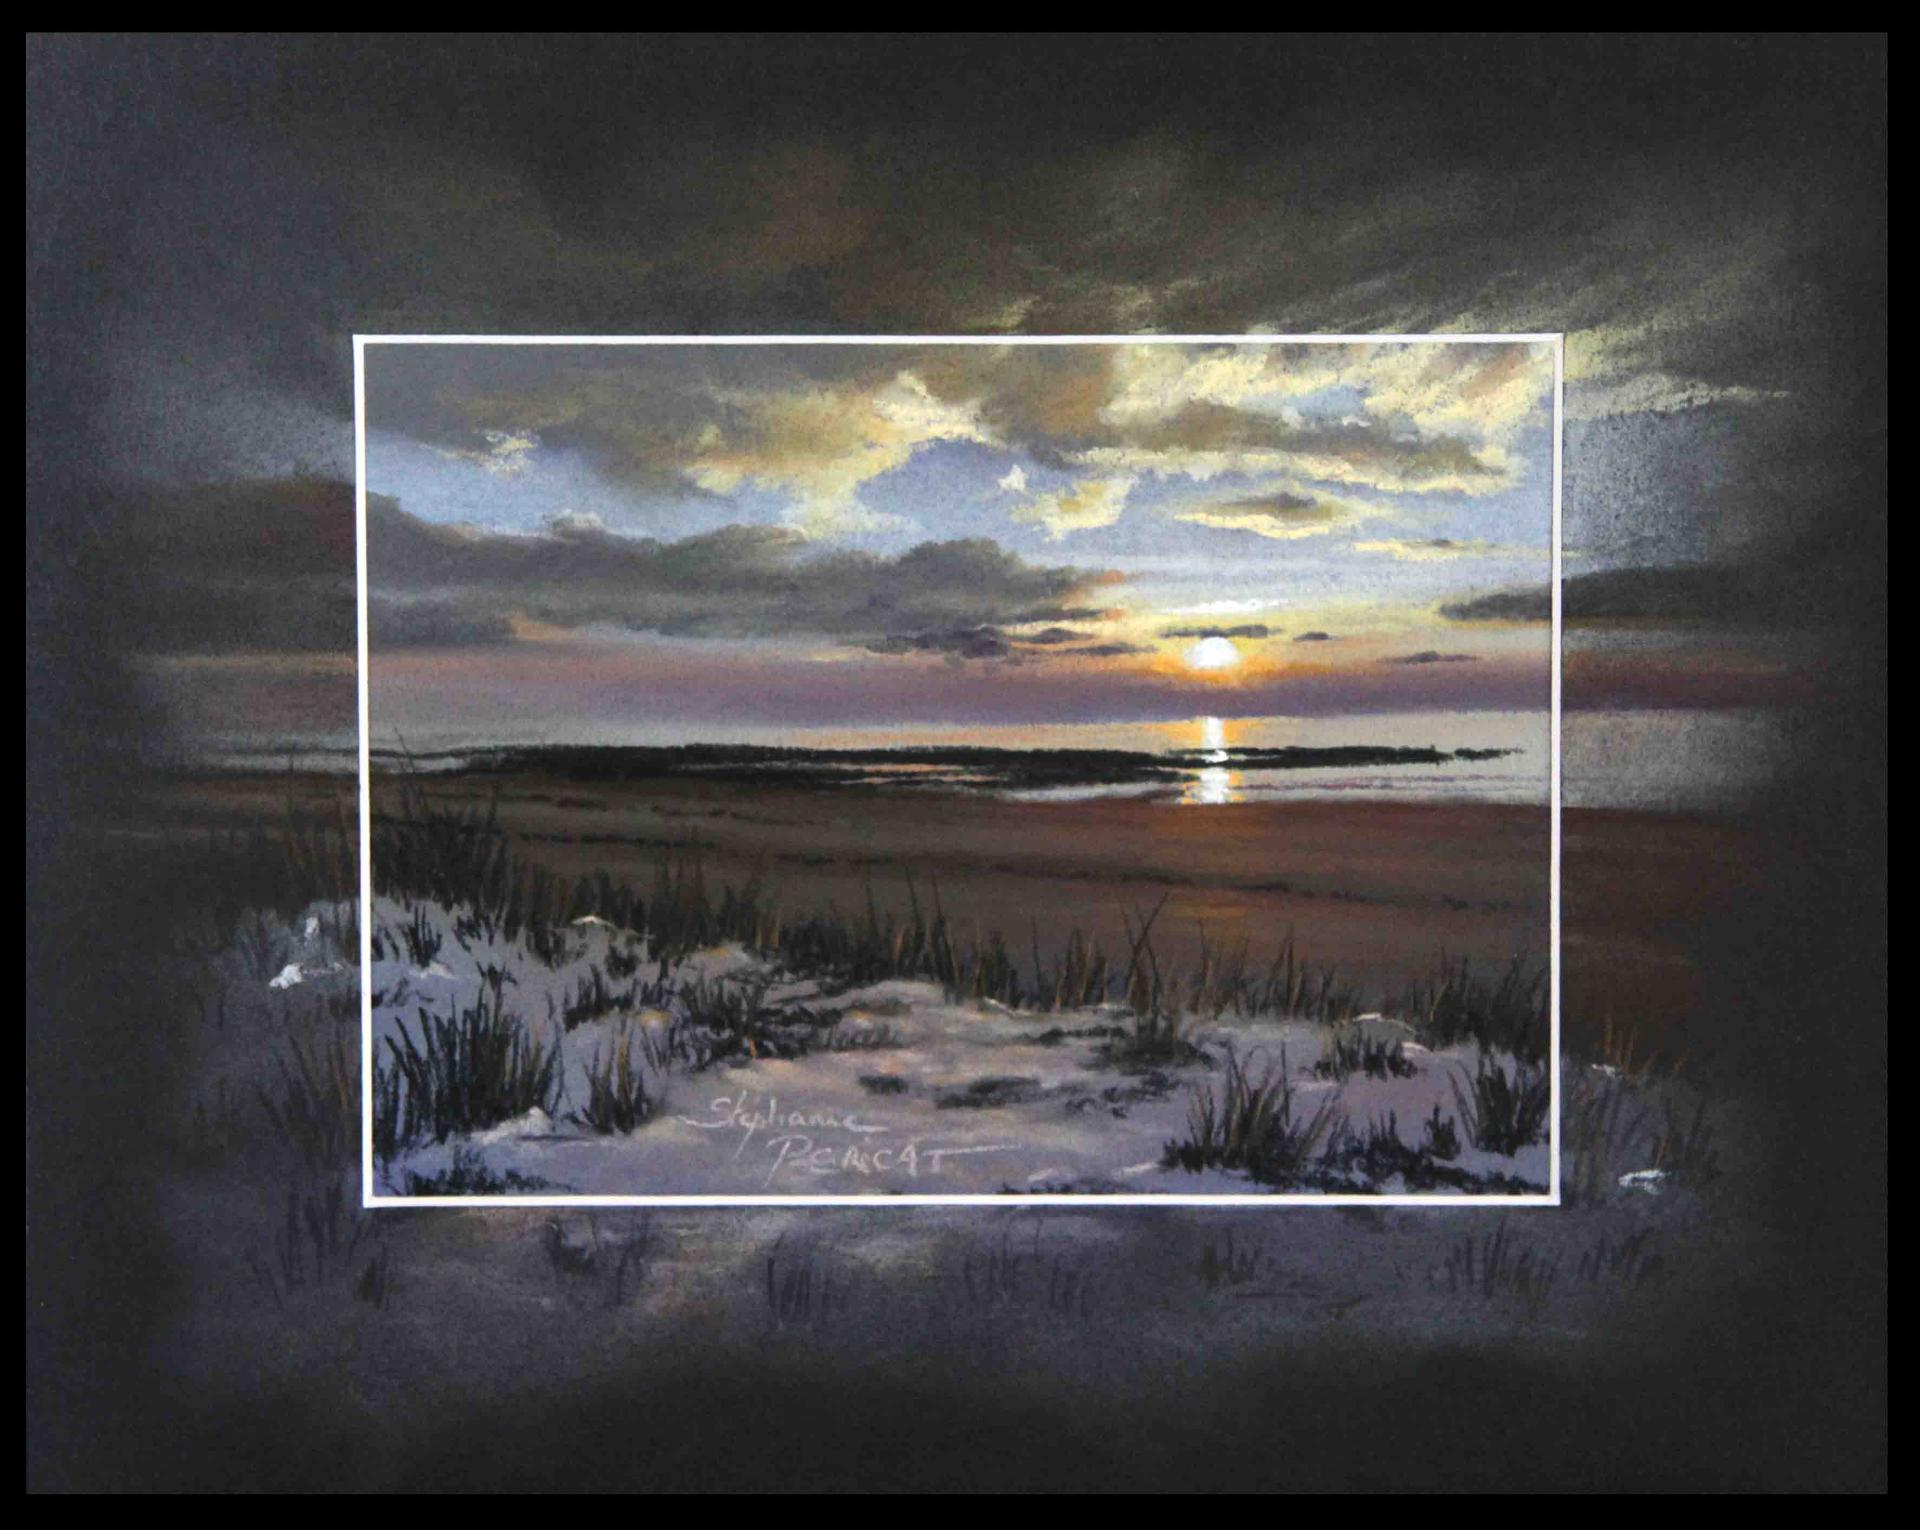 PLAGE DU HAUT DY EN HIVER (beach in winter near saint germain sur ay) - pastel sec (soft pastel) - 24x30cm